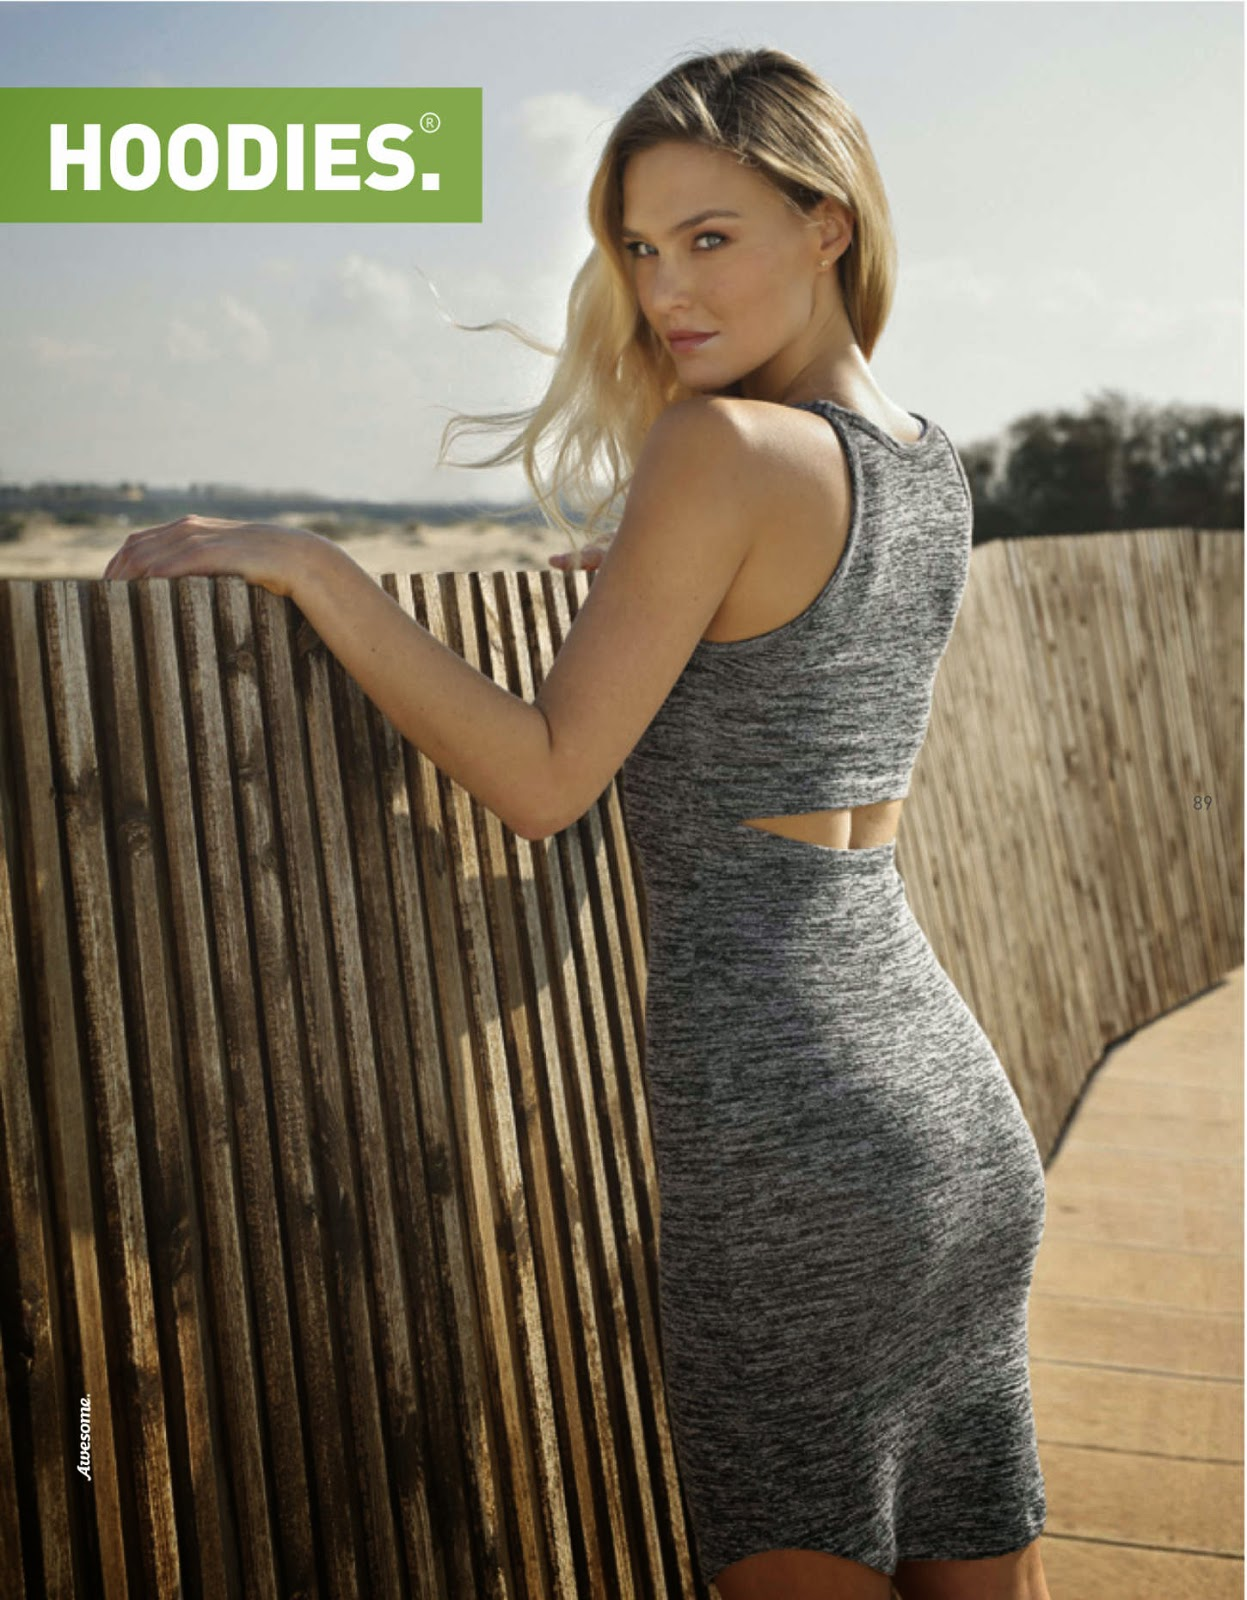 Hoodies Spring/Summer 2015 Lookbook featuring Bar Refaeli